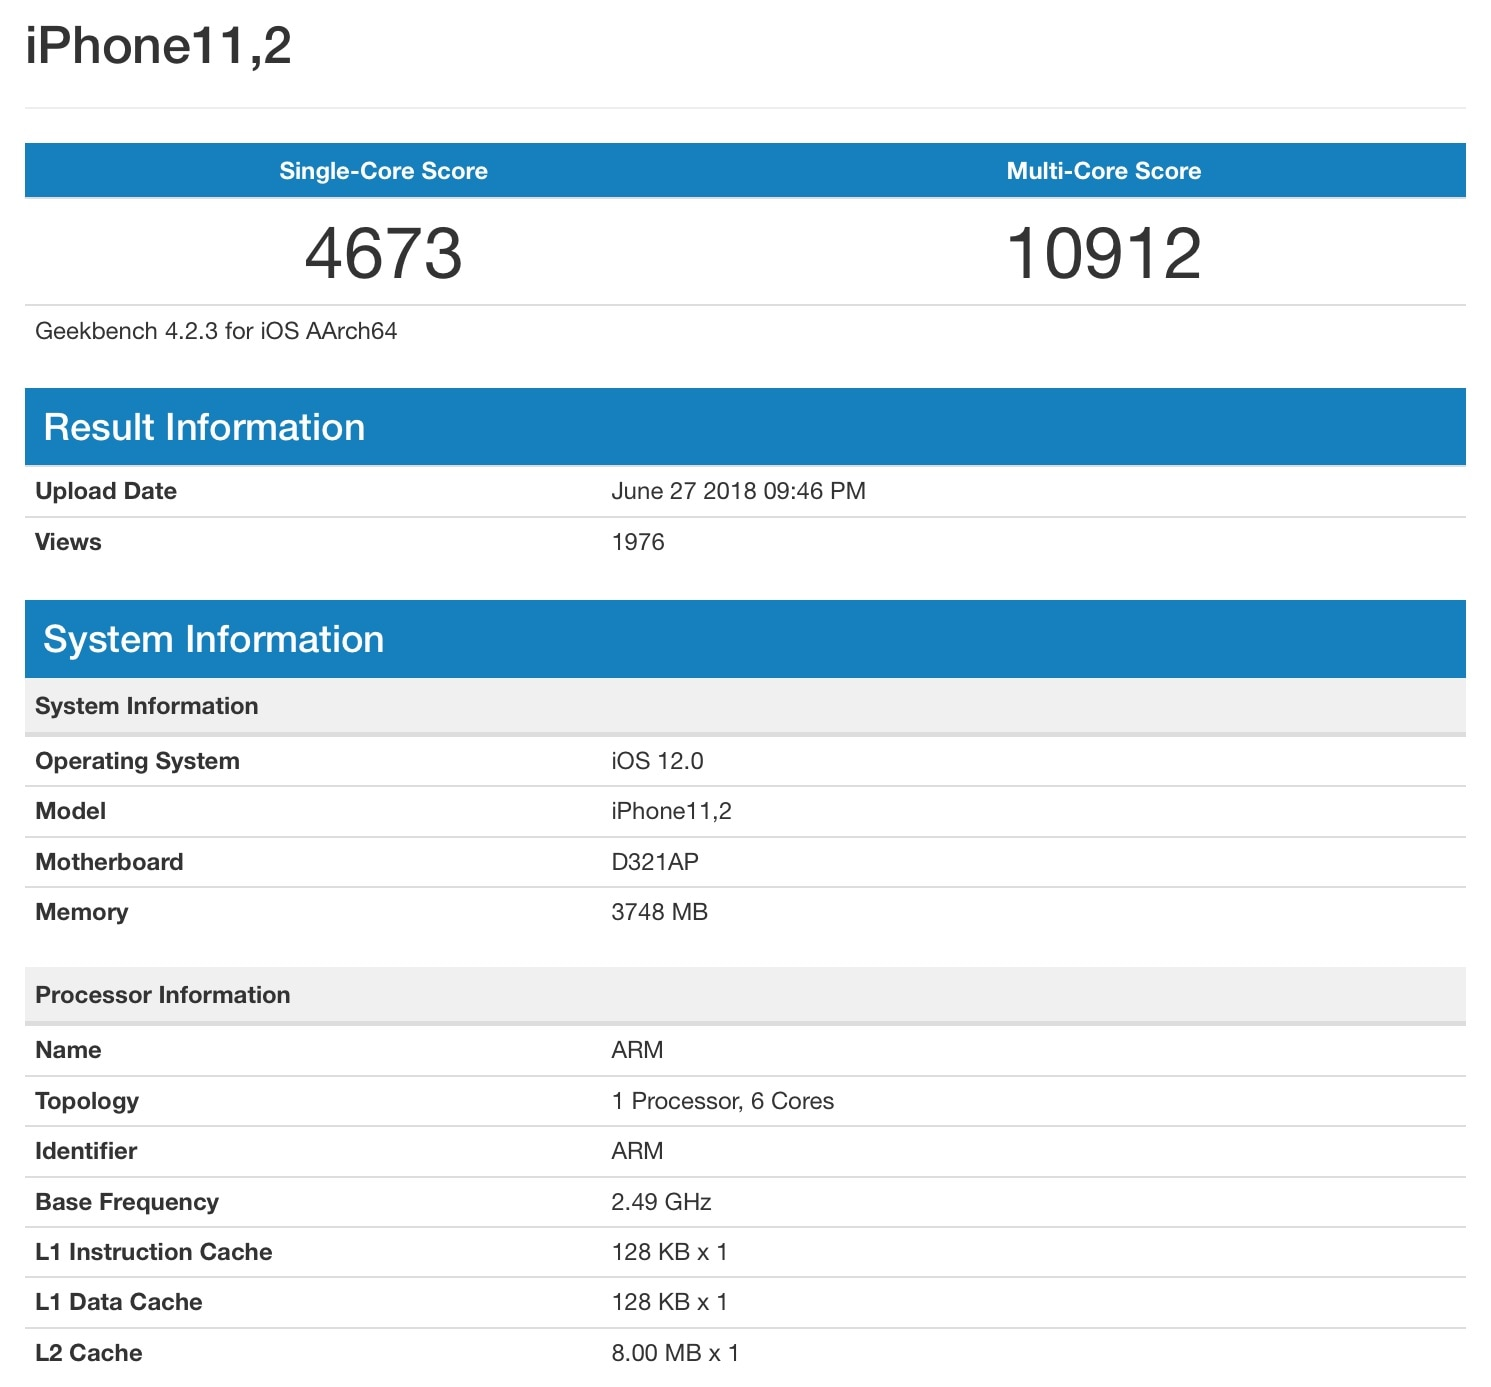 Suposto benchmark do iPhone11,2